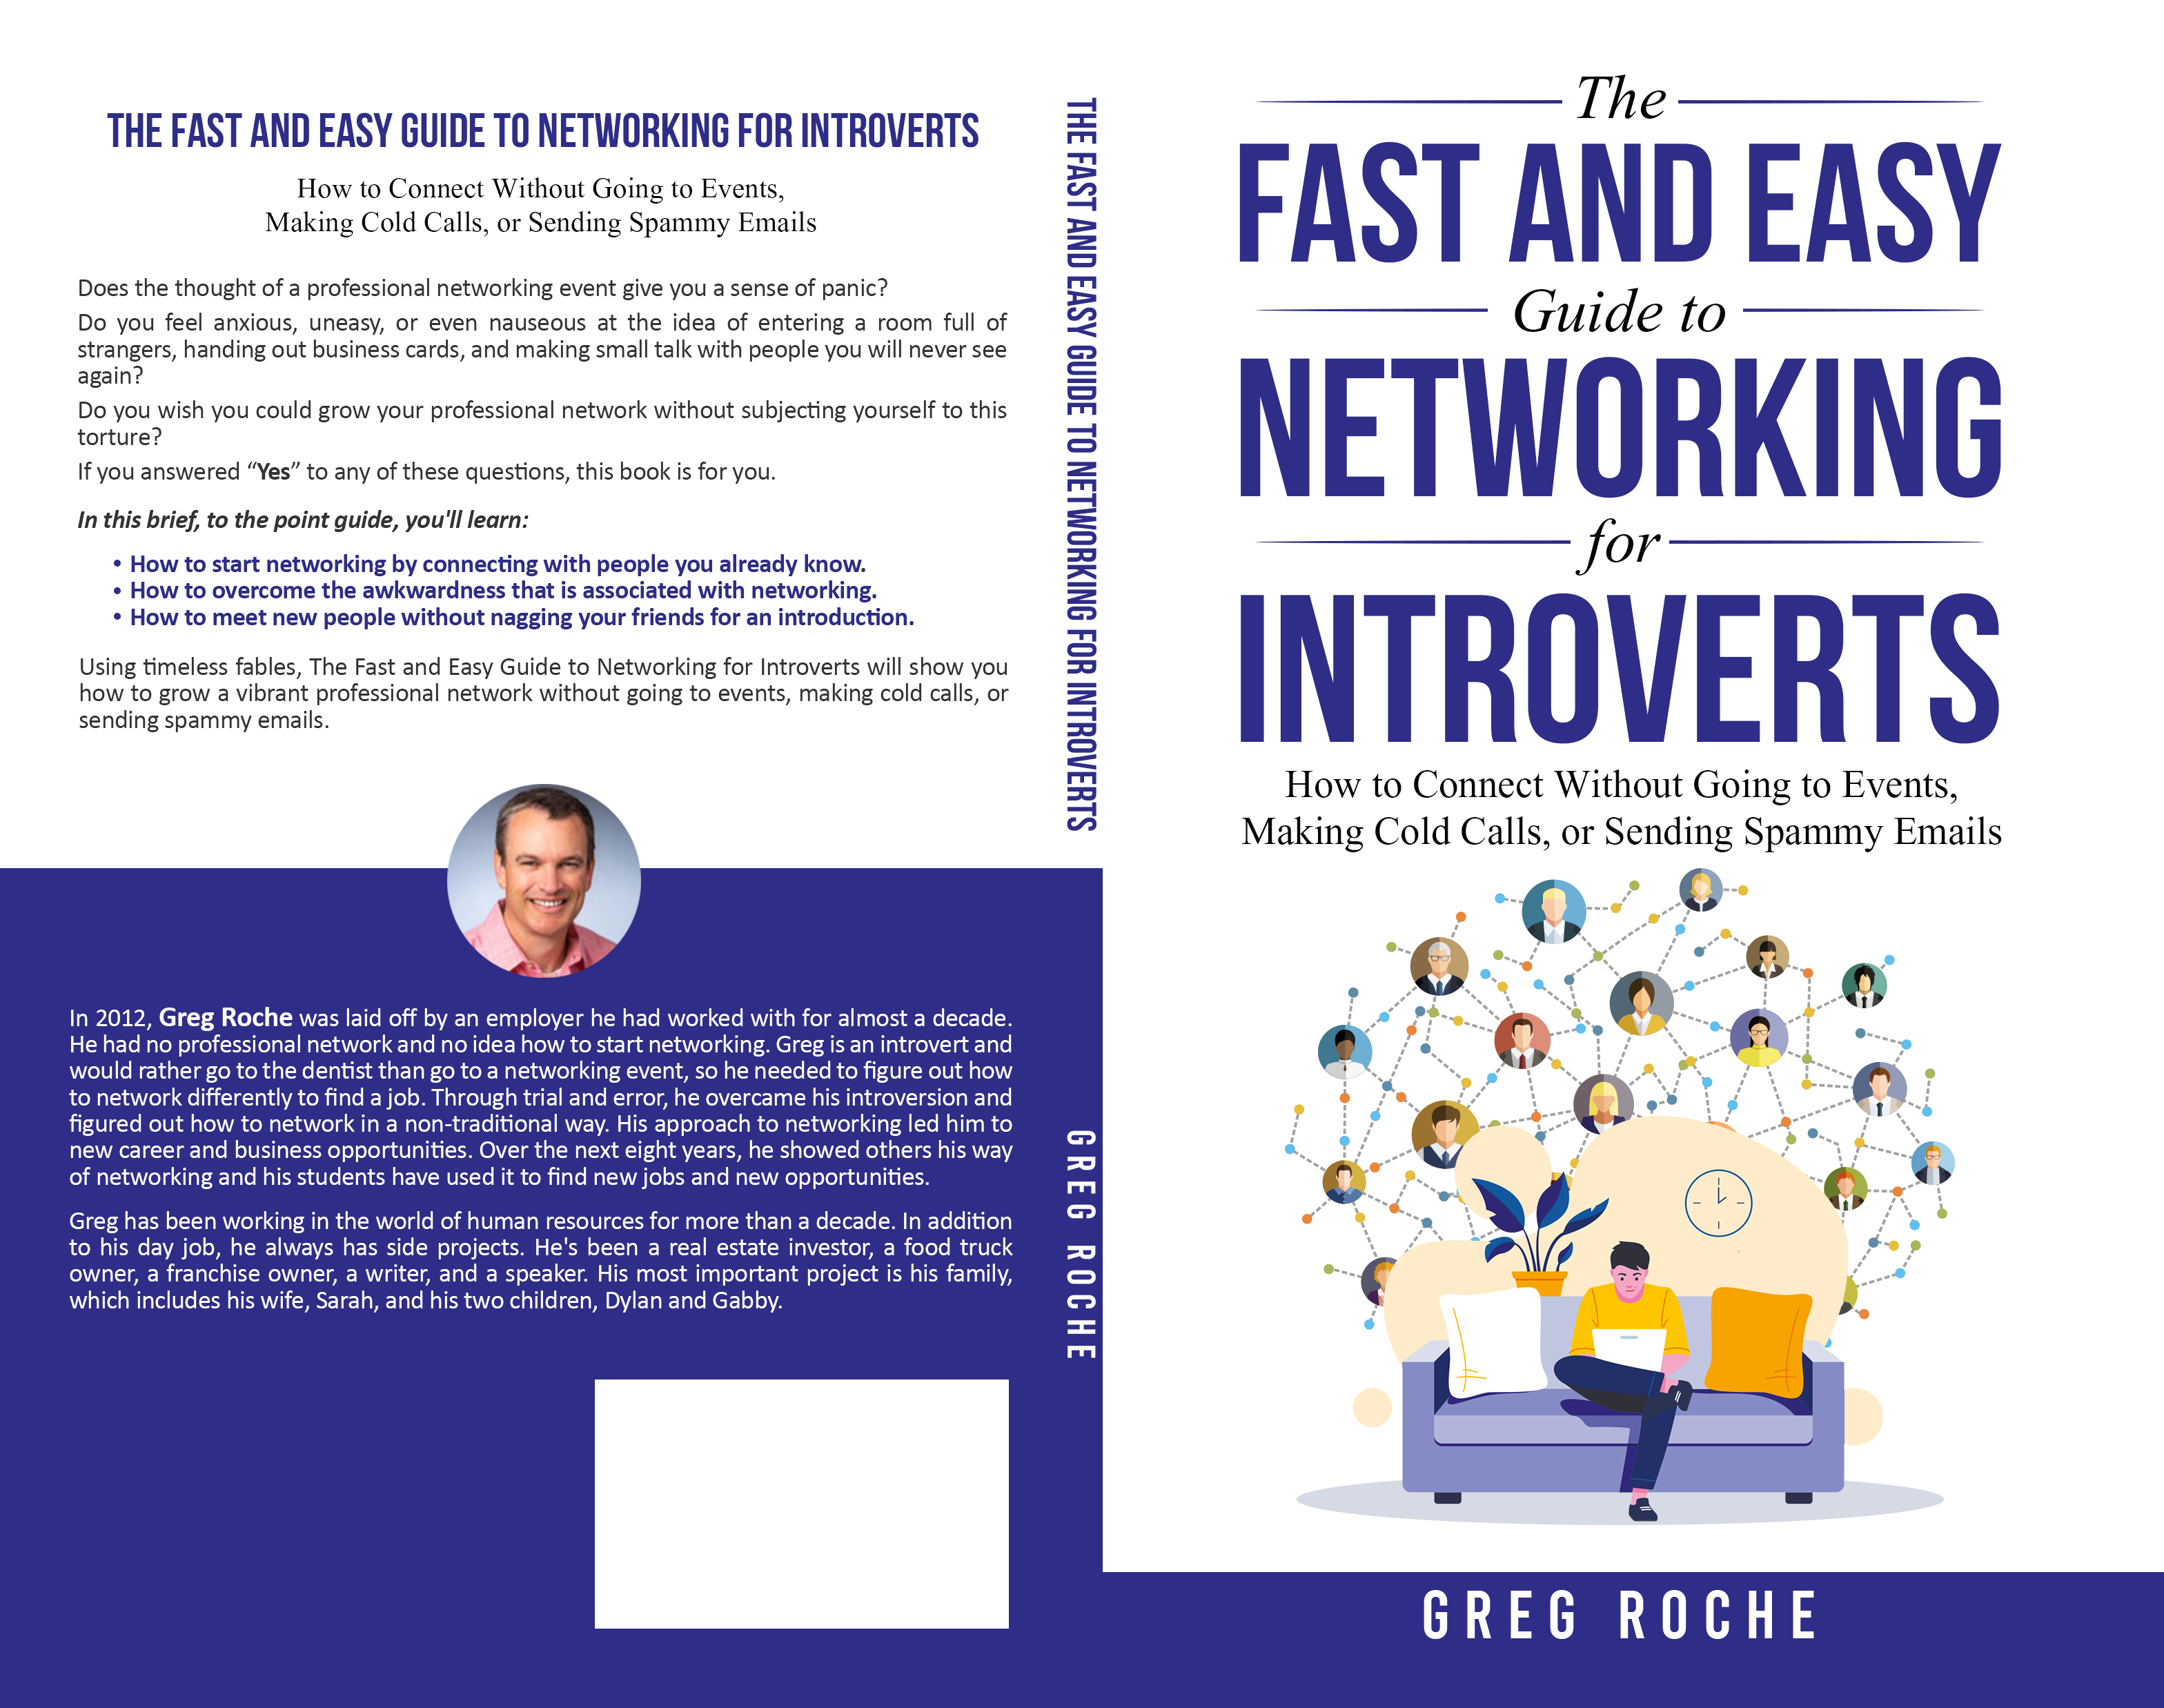 Create cover for book about professional networking for introverts